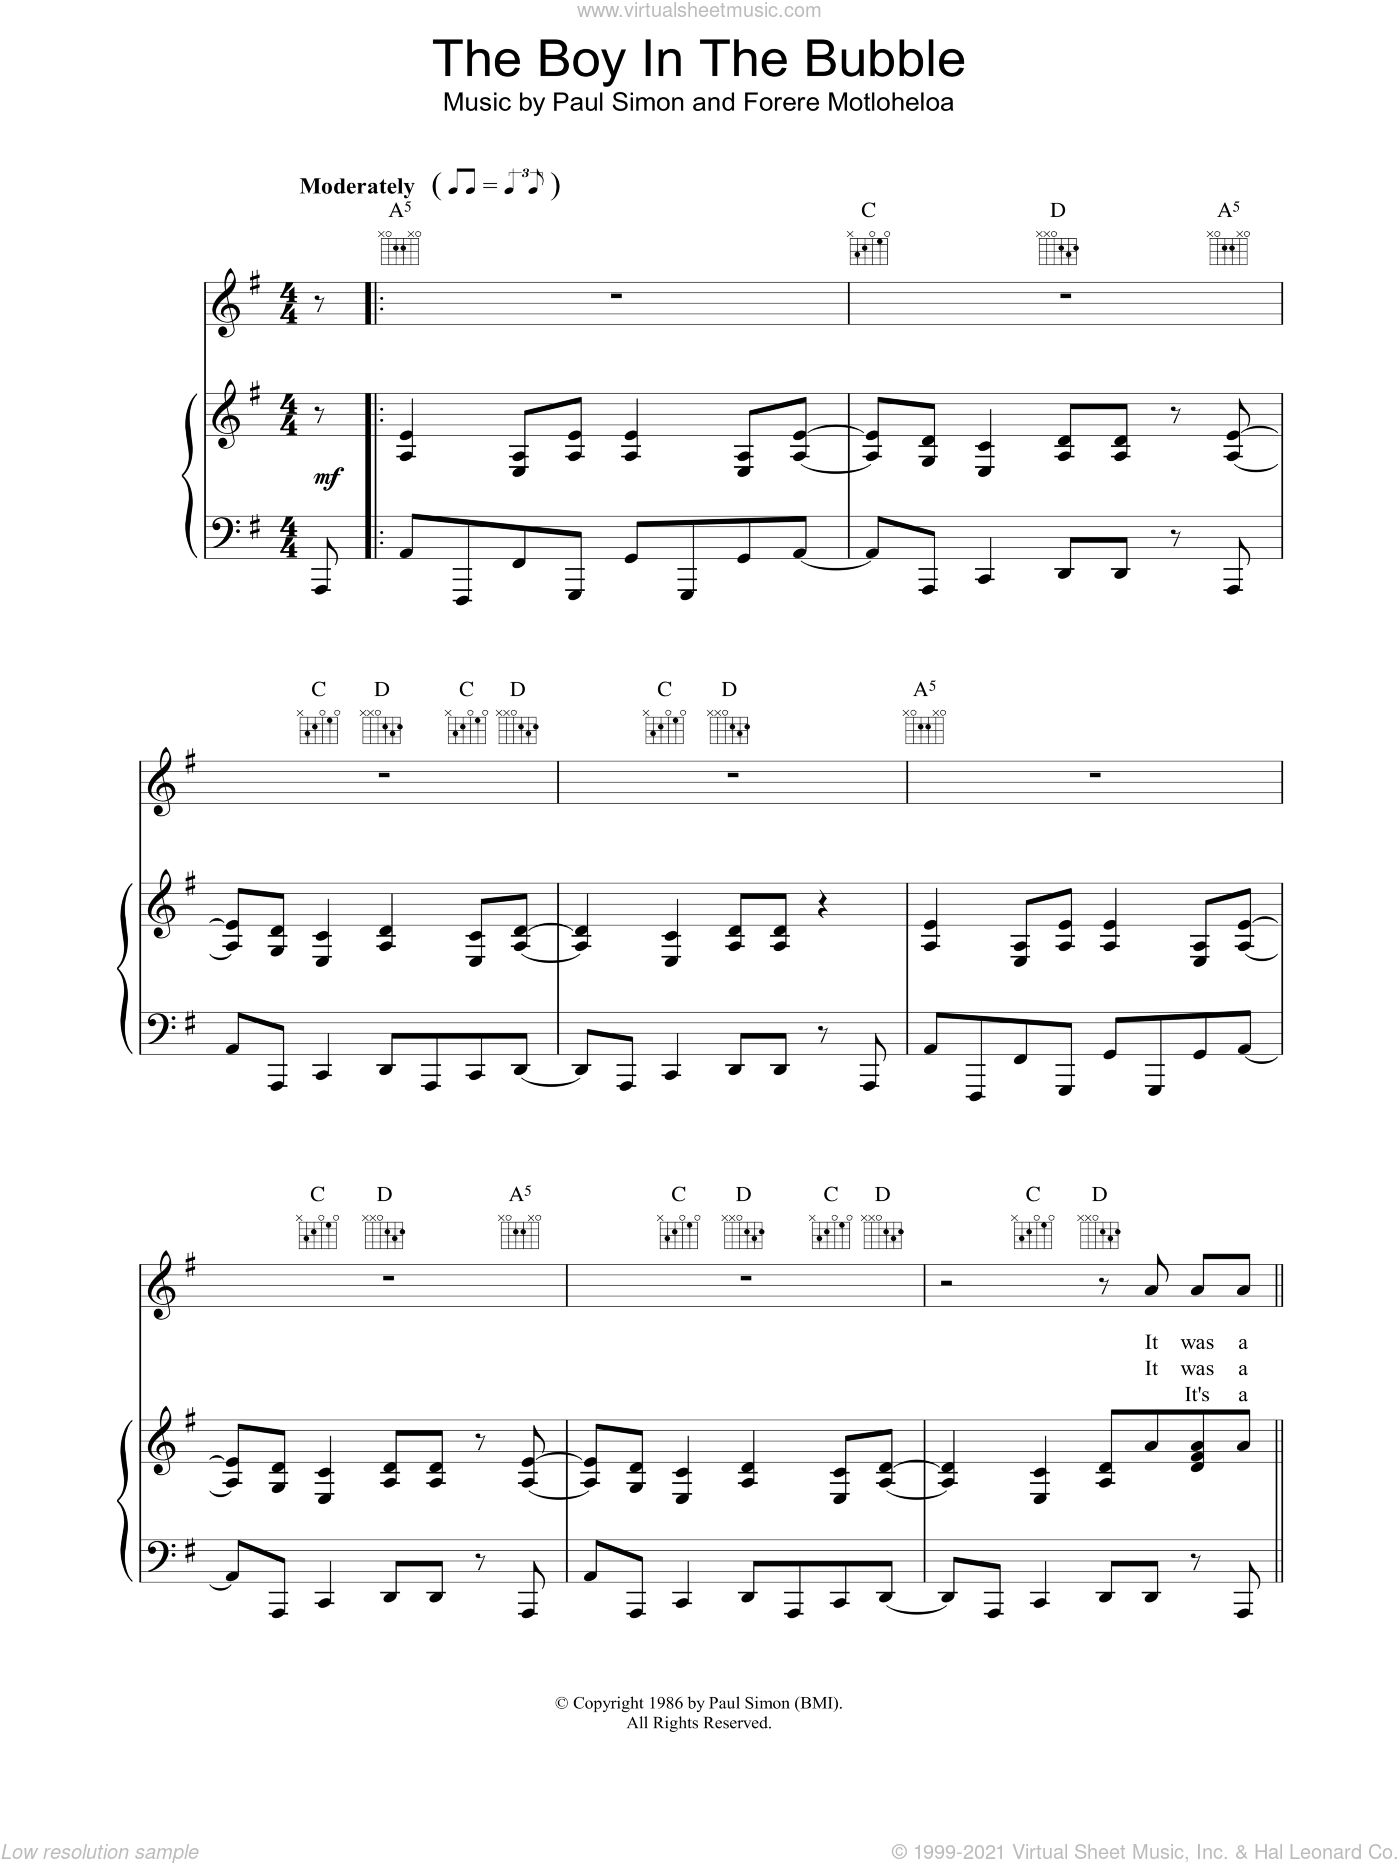 The Boy In The Bubble Sheet Music For Voice, Piano